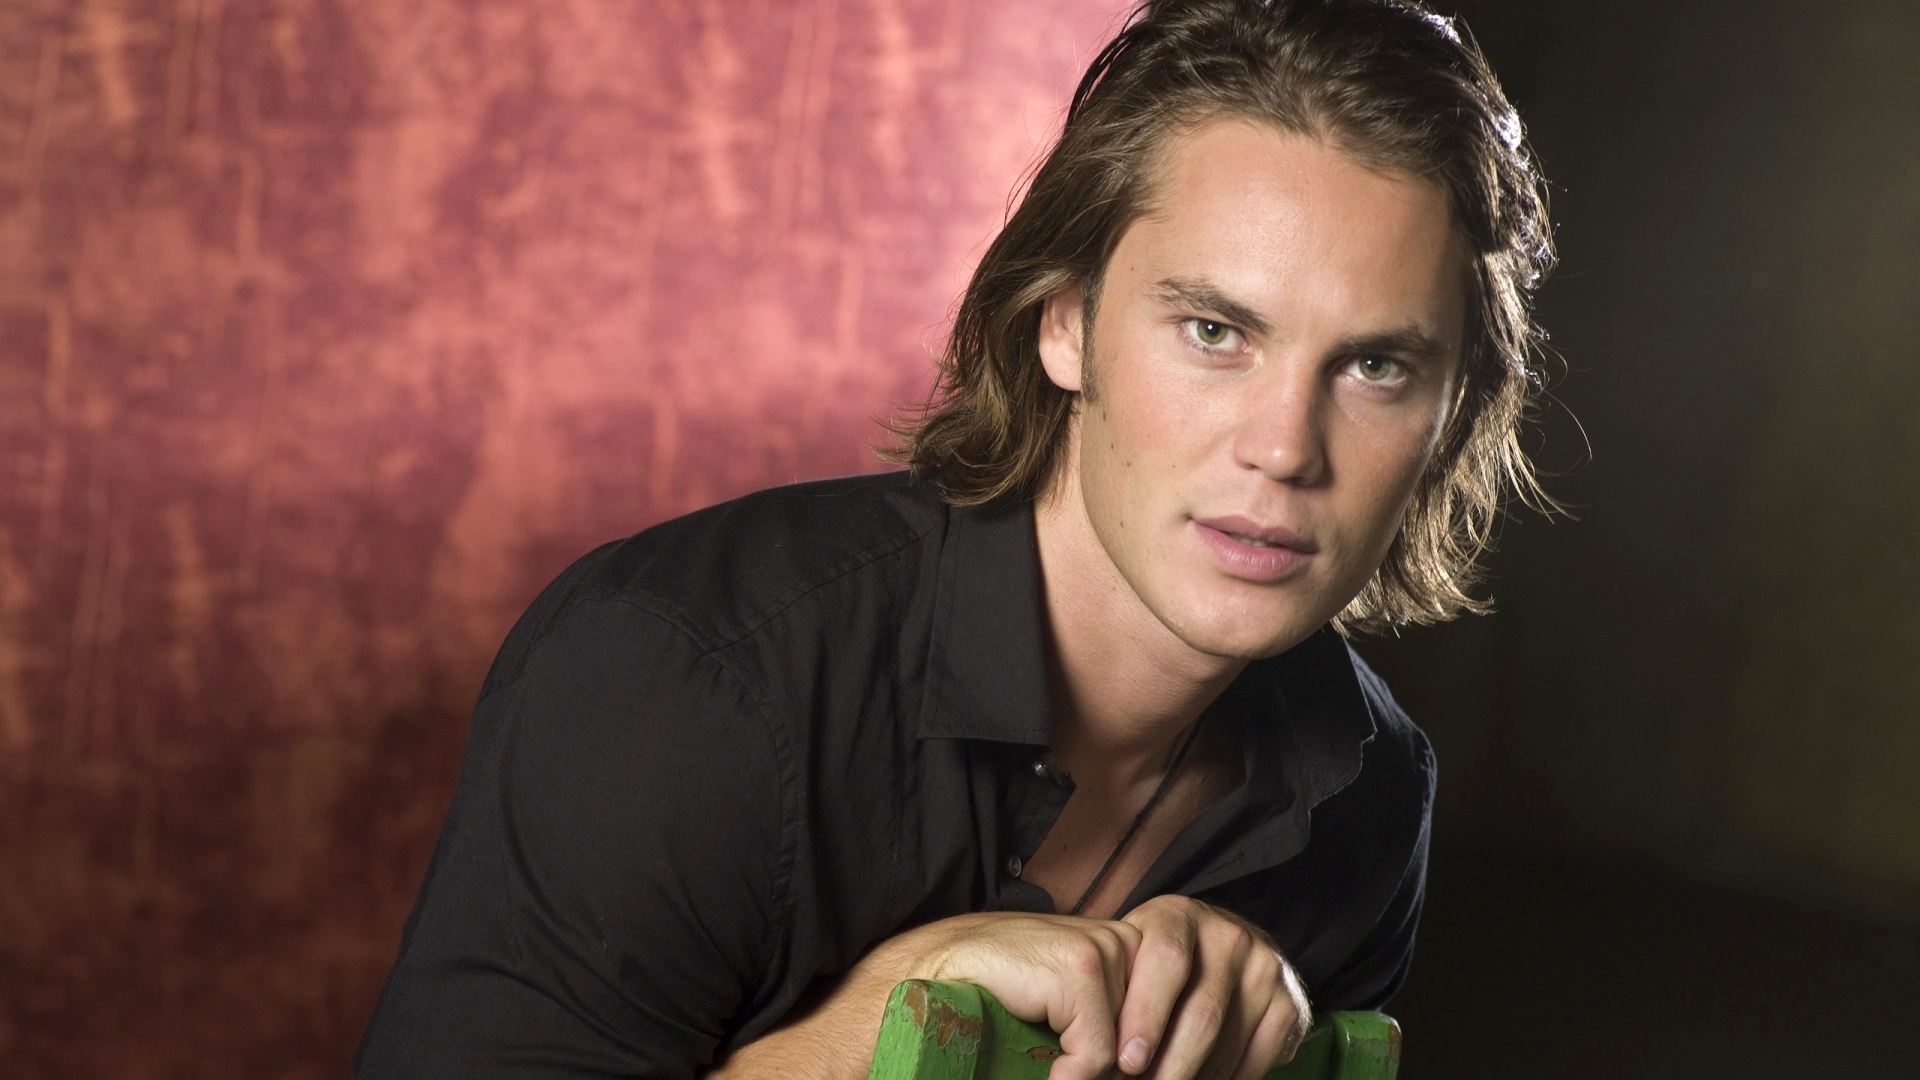 1920x1080 - Taylor Kitsch Wallpapers 7